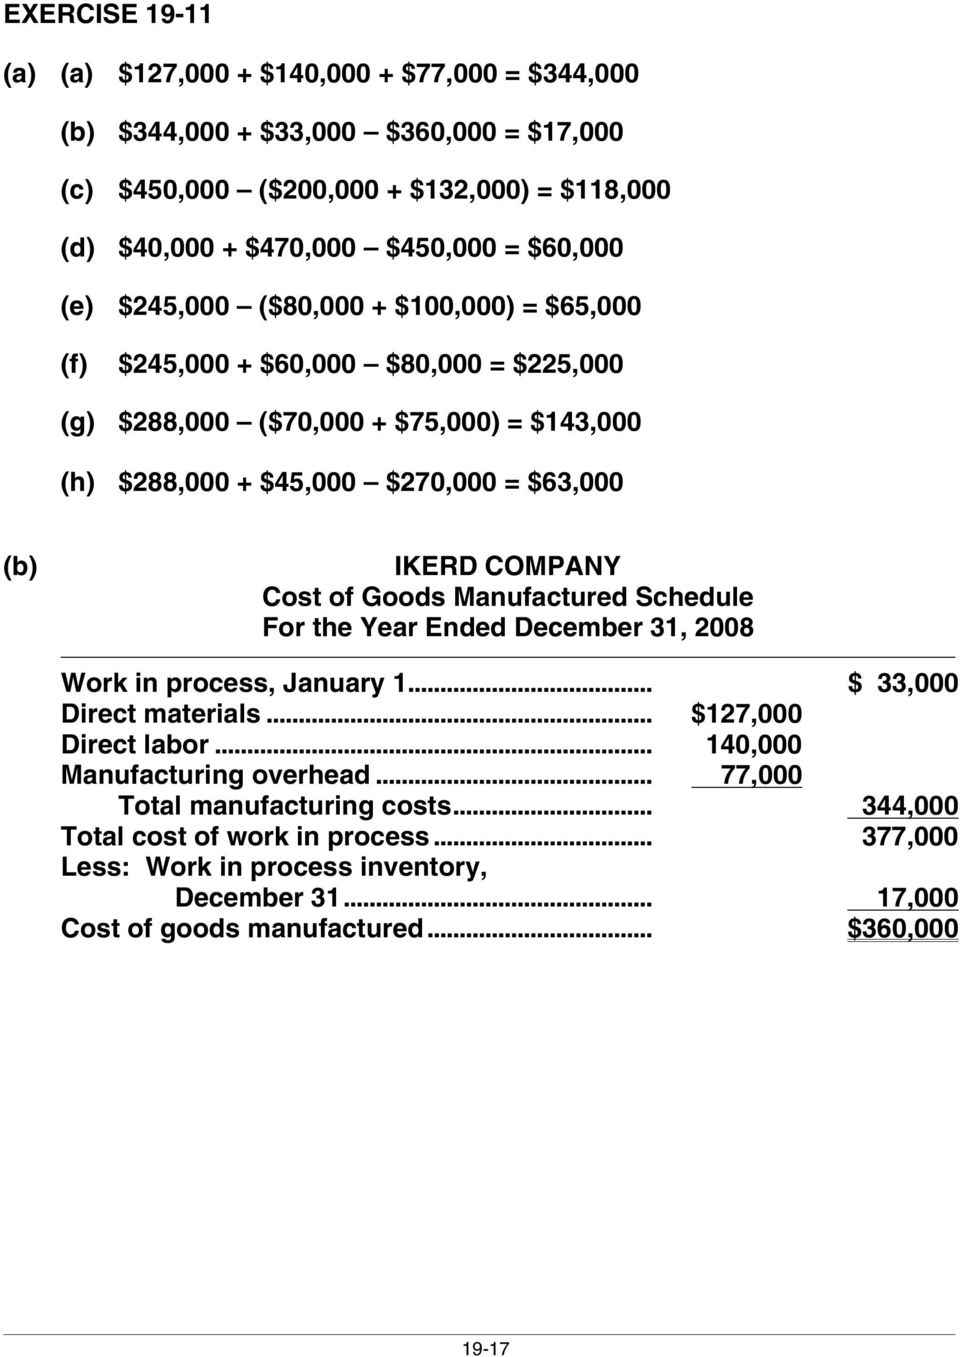 Chapter 19 managerial accounting brief 1 2 5 6 7 2 3 10 11 company cost of goods manufactured schedule for the year ended december 31 2008 work in fandeluxe Choice Image